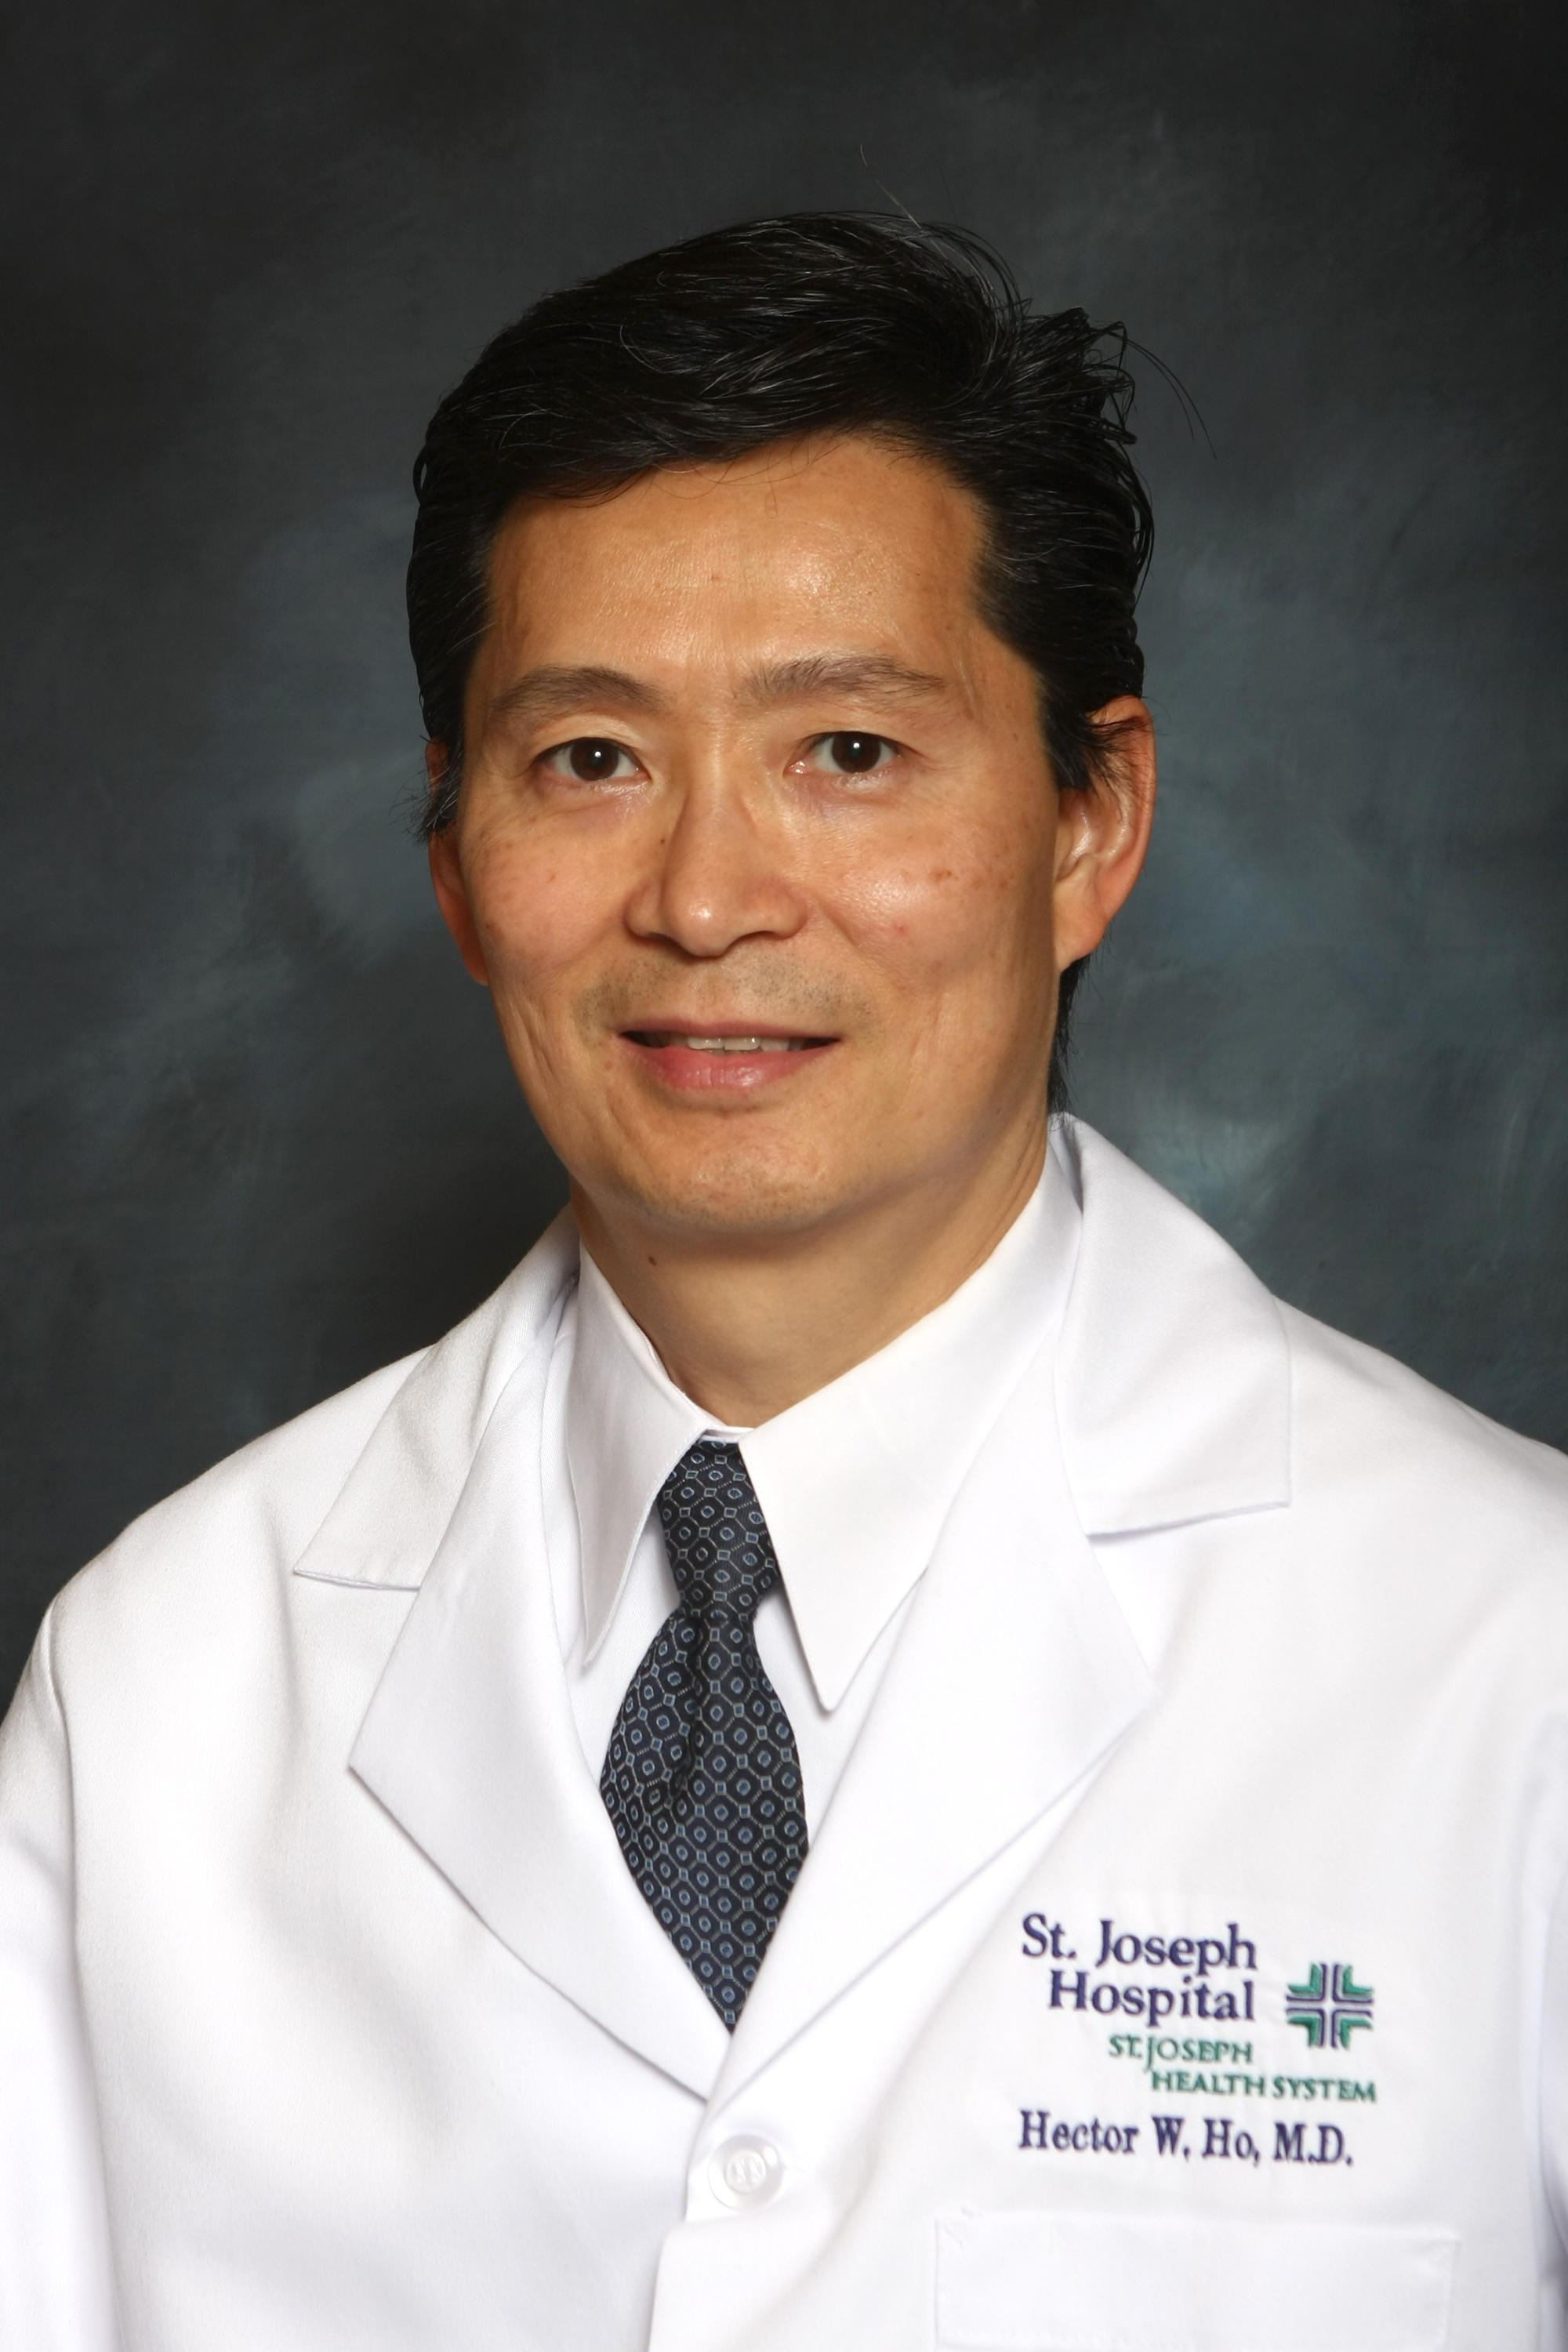 Image For Dr. Hector W. Ho MD